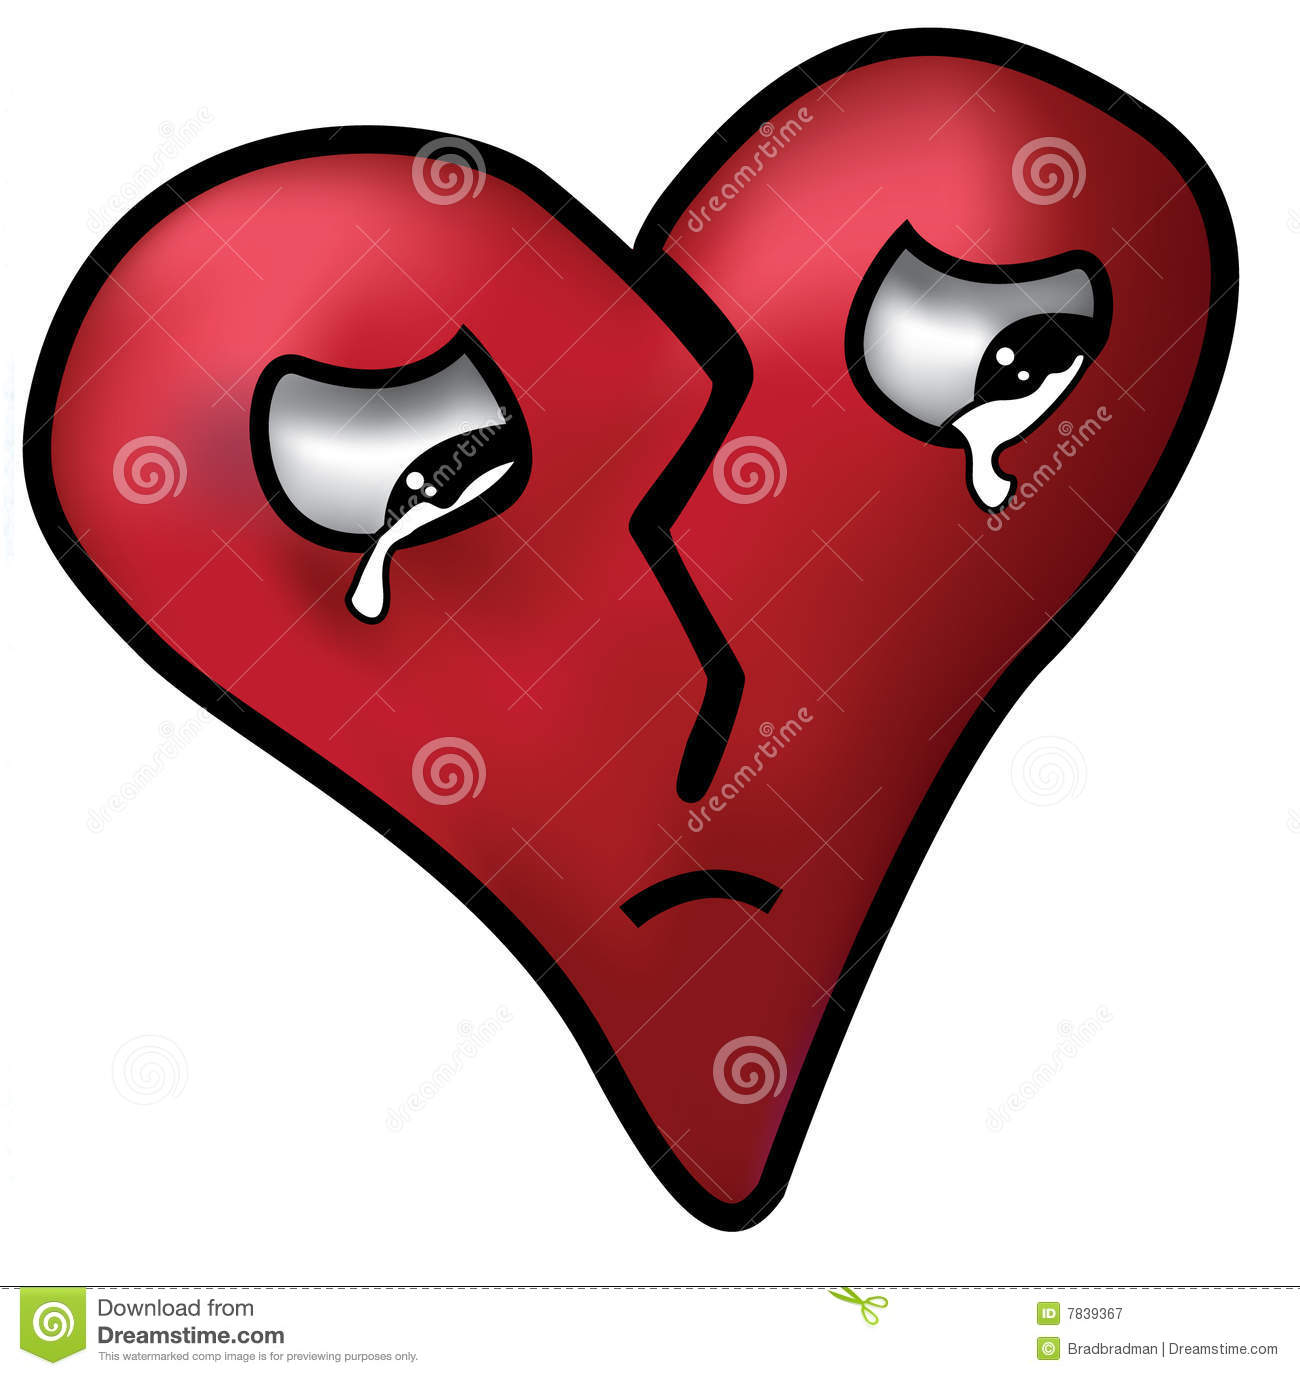 Image result for royalty free images broken heart